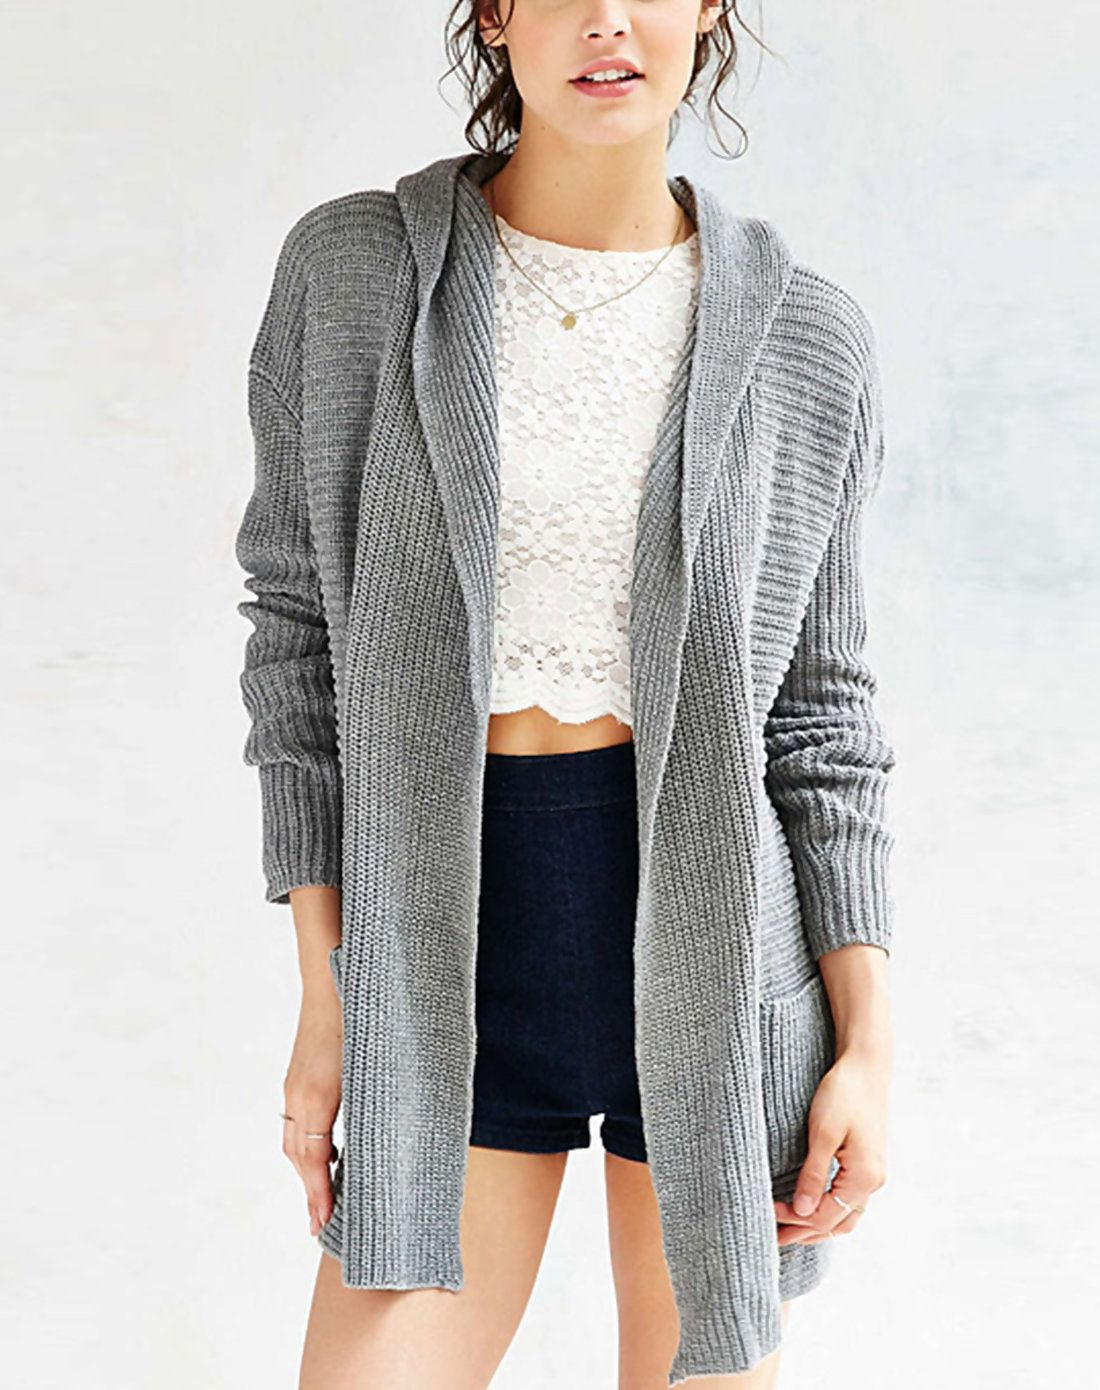 RichcocoClassic Grey Hoodie Sweater Cardigan With Pockets ...